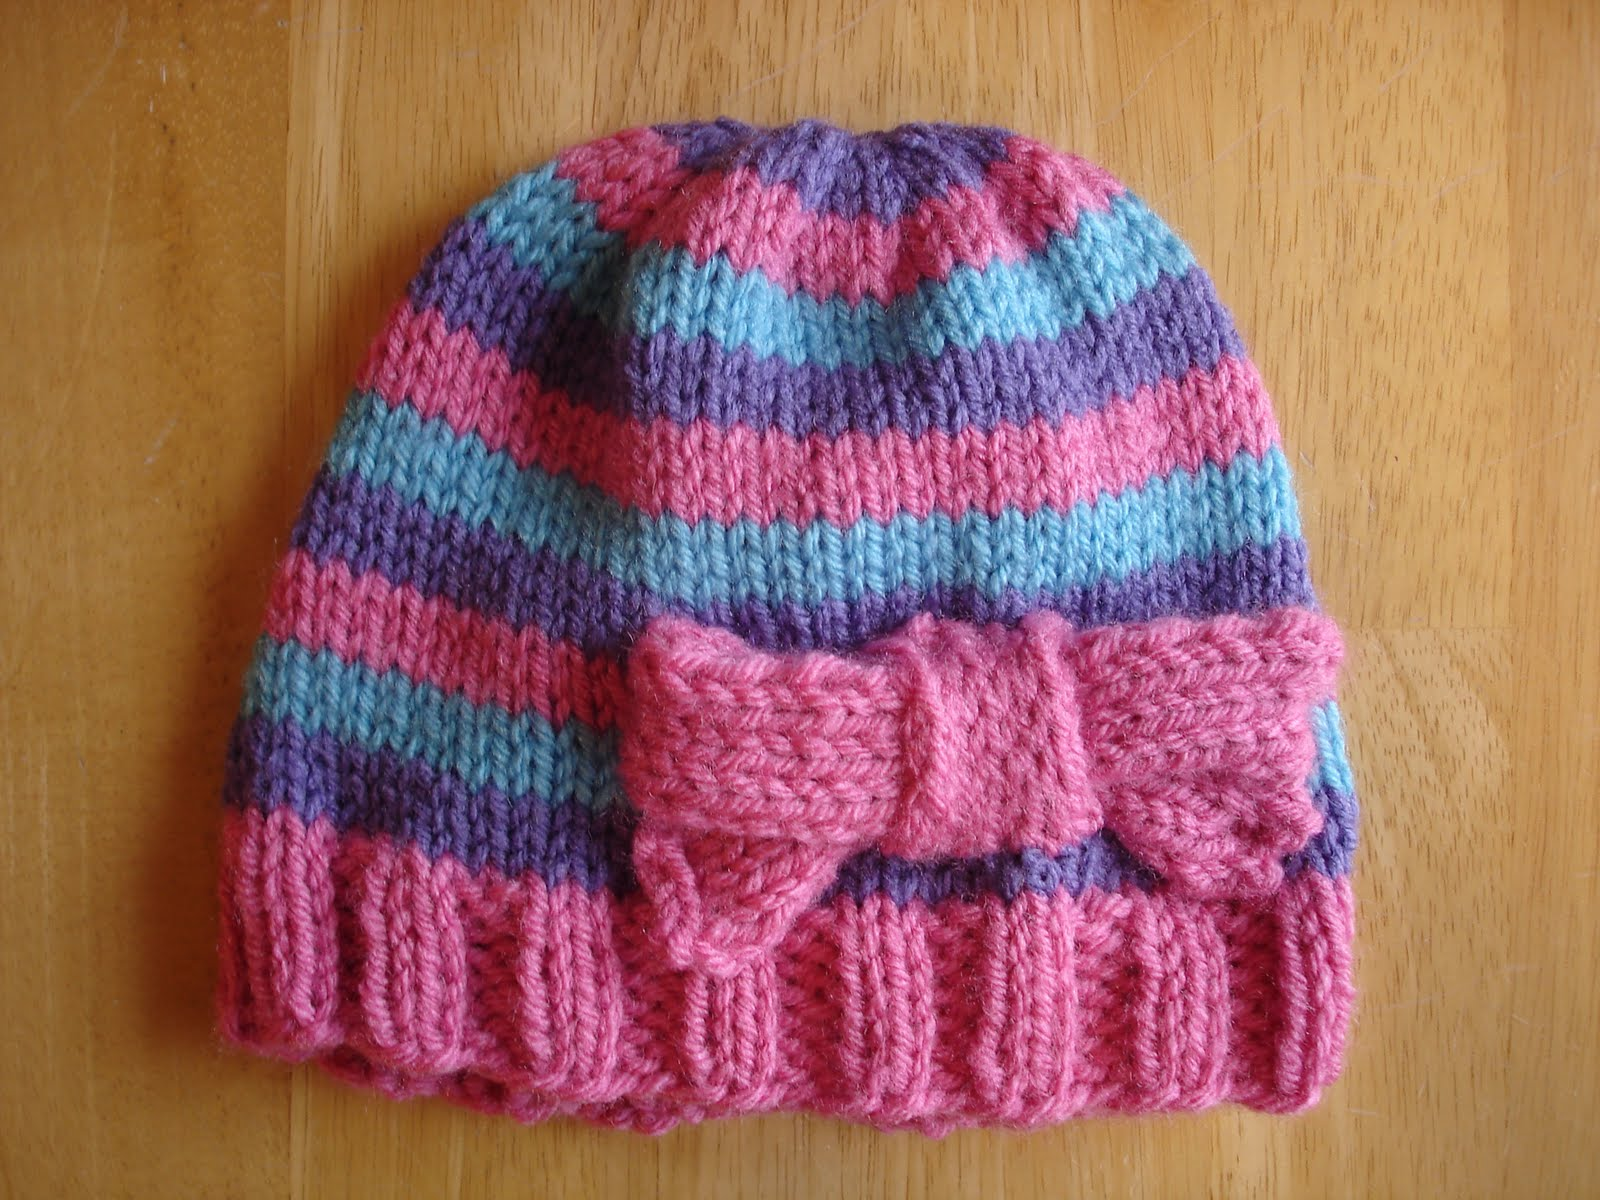 Knitting Hat Patterns : Fiber Flux: Free Knitting Pattern...Super Pink Toddler Hat!